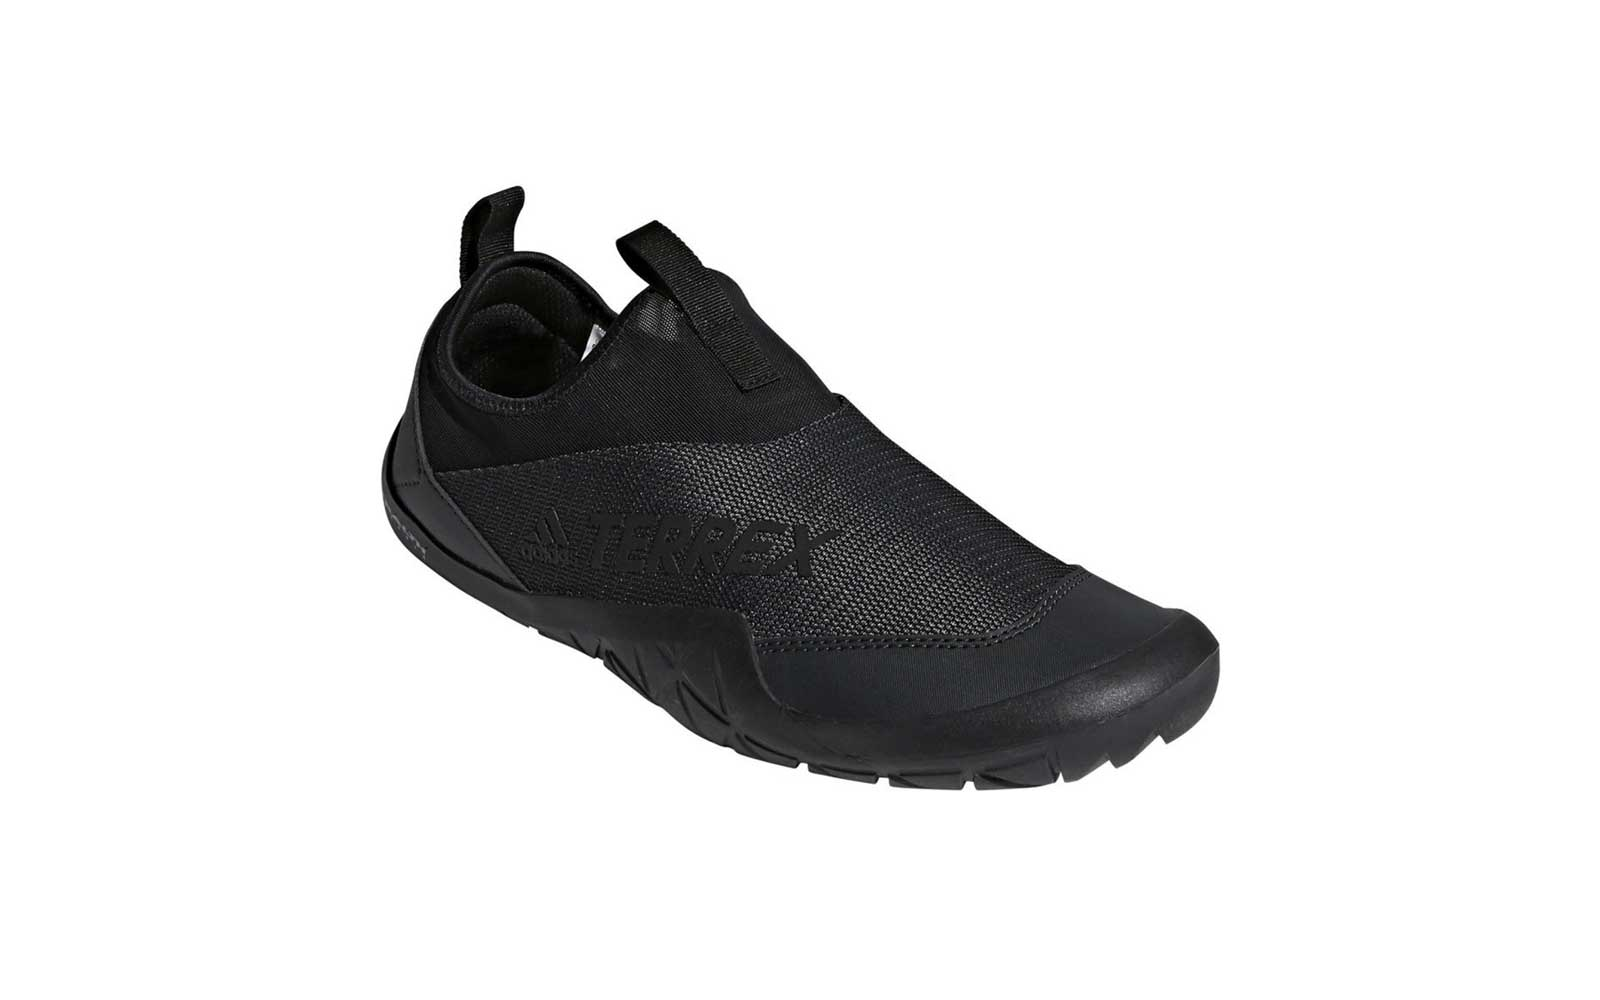 efc123574657 The Best Men s Water Shoes for 2019